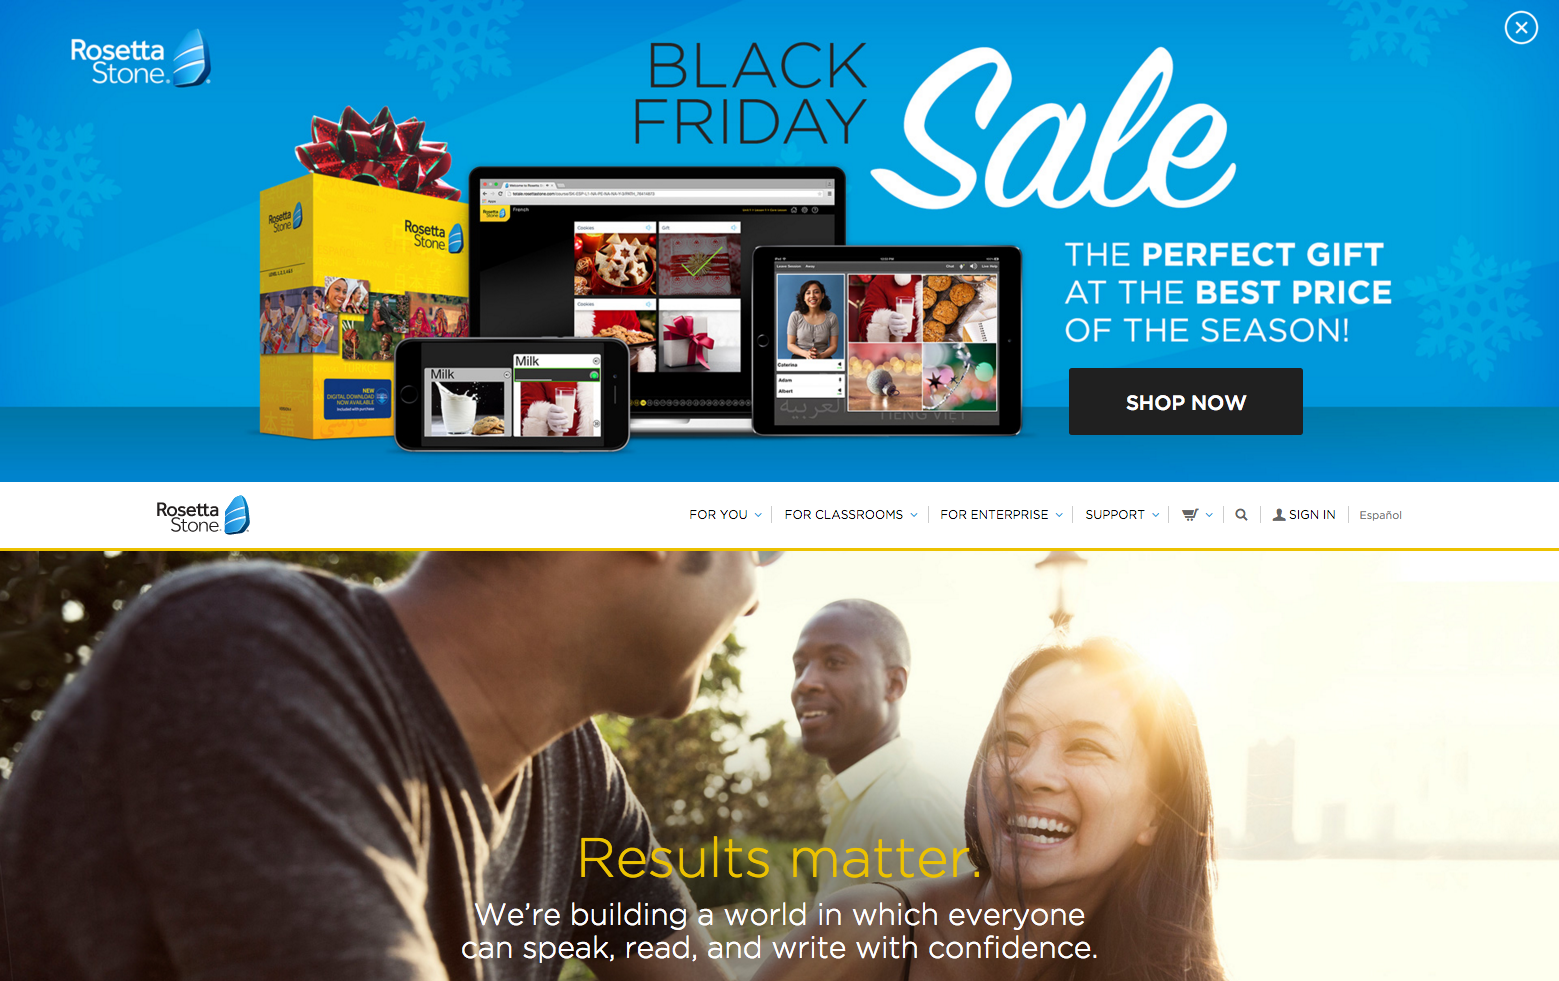 black-friday-cyber-monday-marketing-deals-2015-32